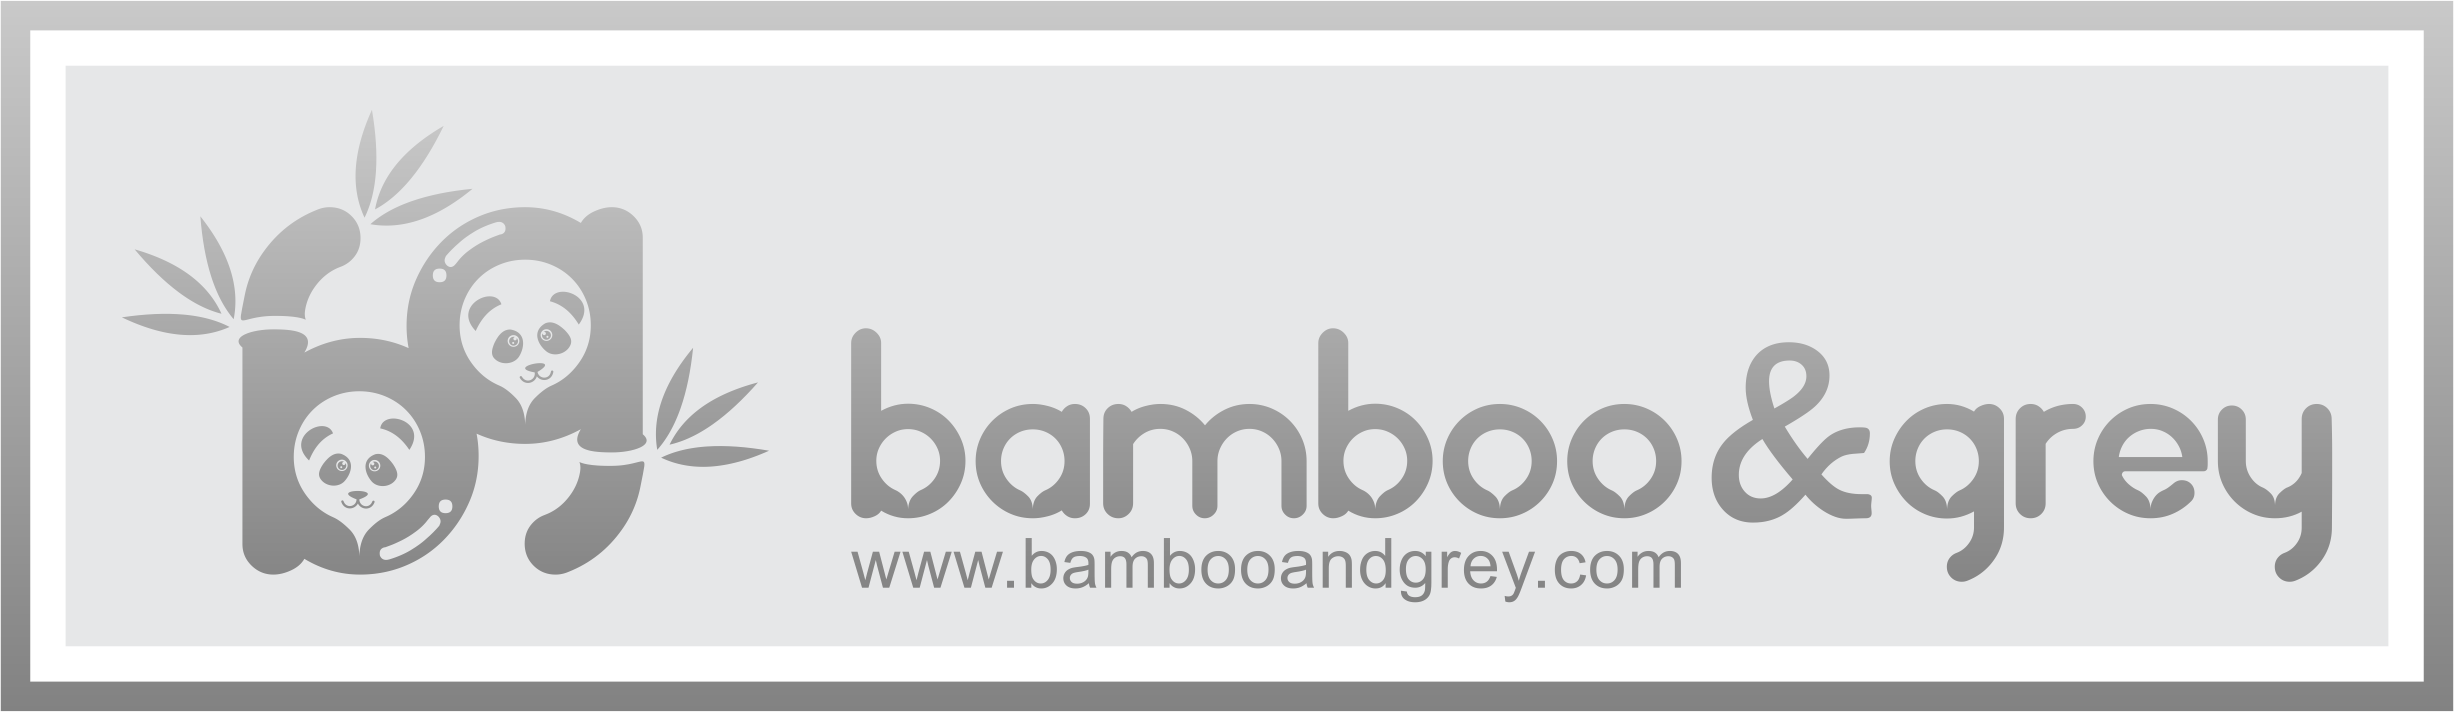 ecocobox brands - Bamboo and Grey